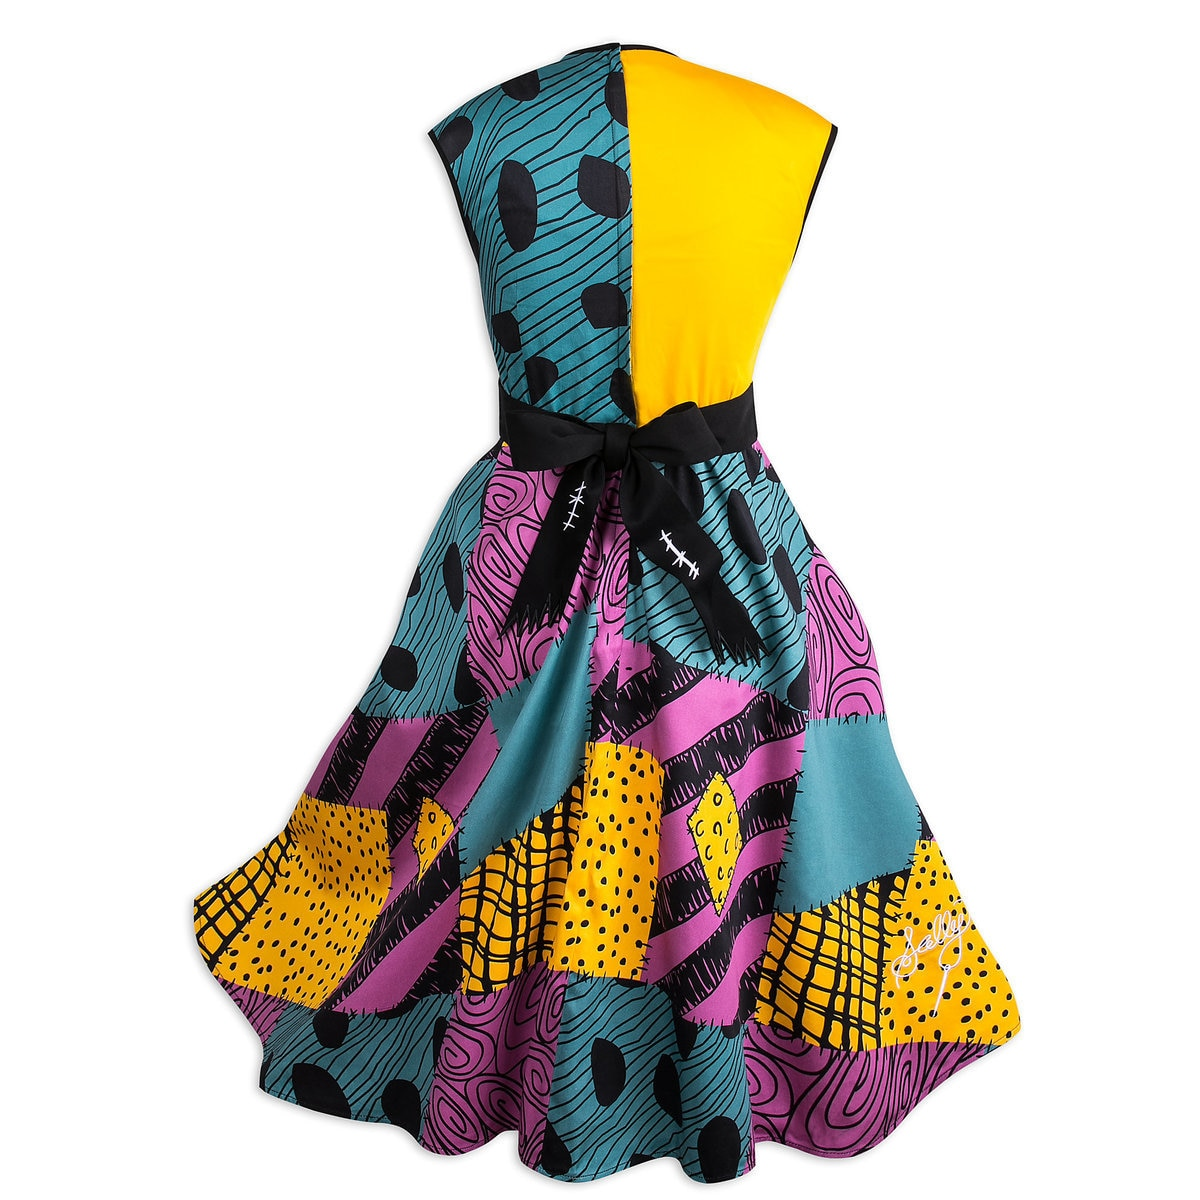 c511614a23252a Product Image of Sally Dress for Women - The Nightmare Before Christmas   2